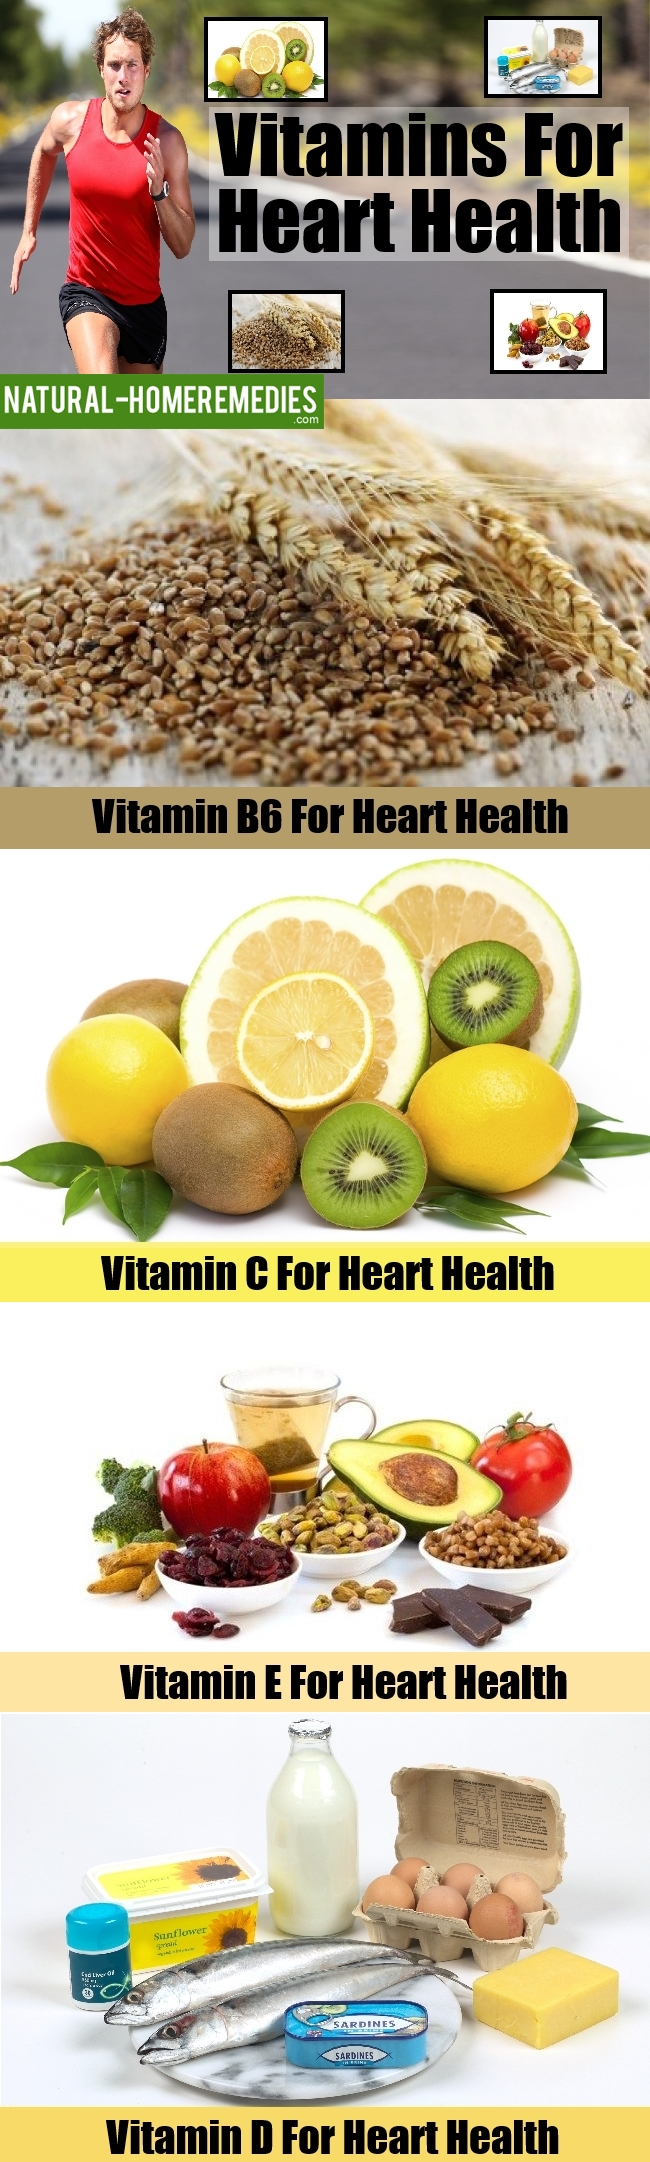 Best Vitamins For Heart Health